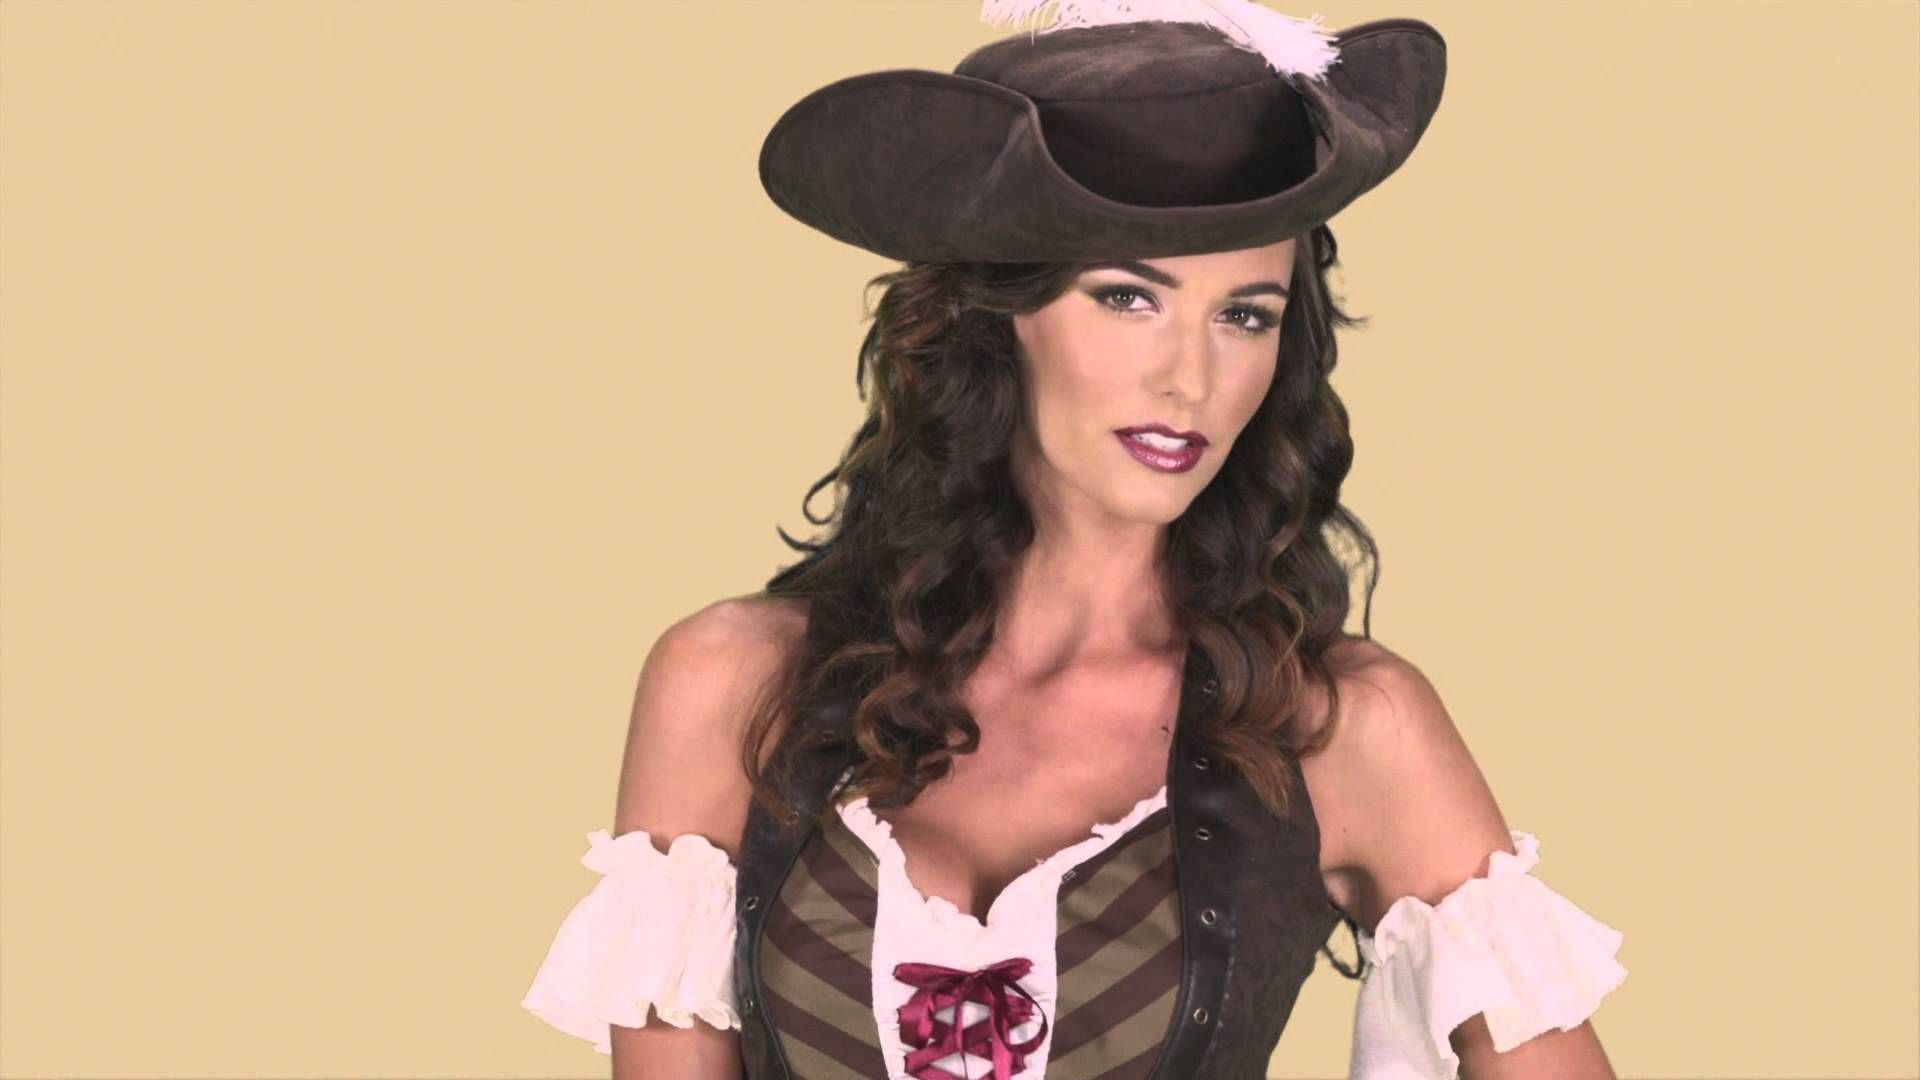 Sexy Swashbuckler  Pirate Costume by California Costumes  sc 1 st  Pinterest & Sexy Swashbuckler